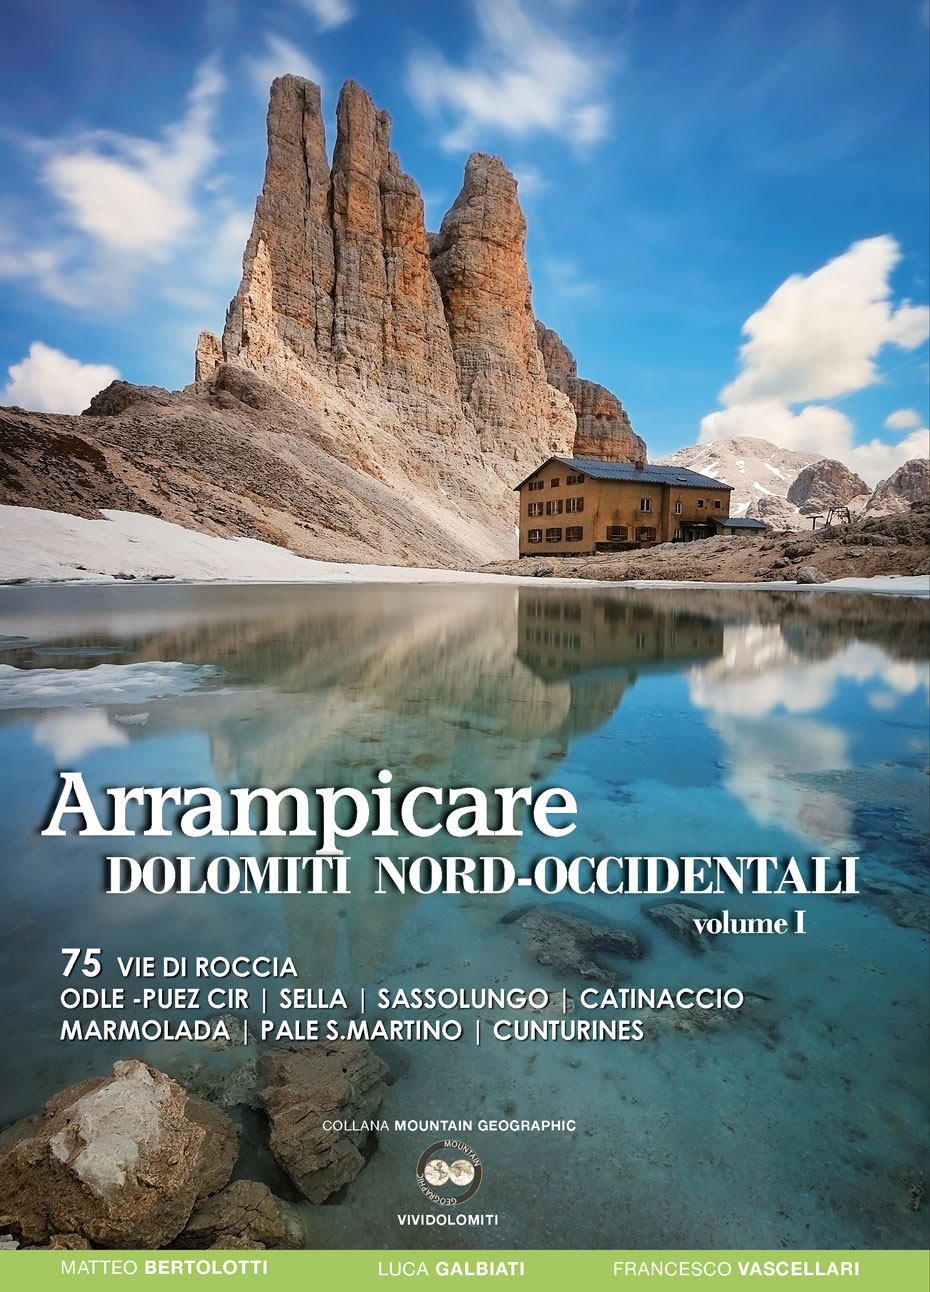 Arrampicare. Dolomiti nord-occidentali